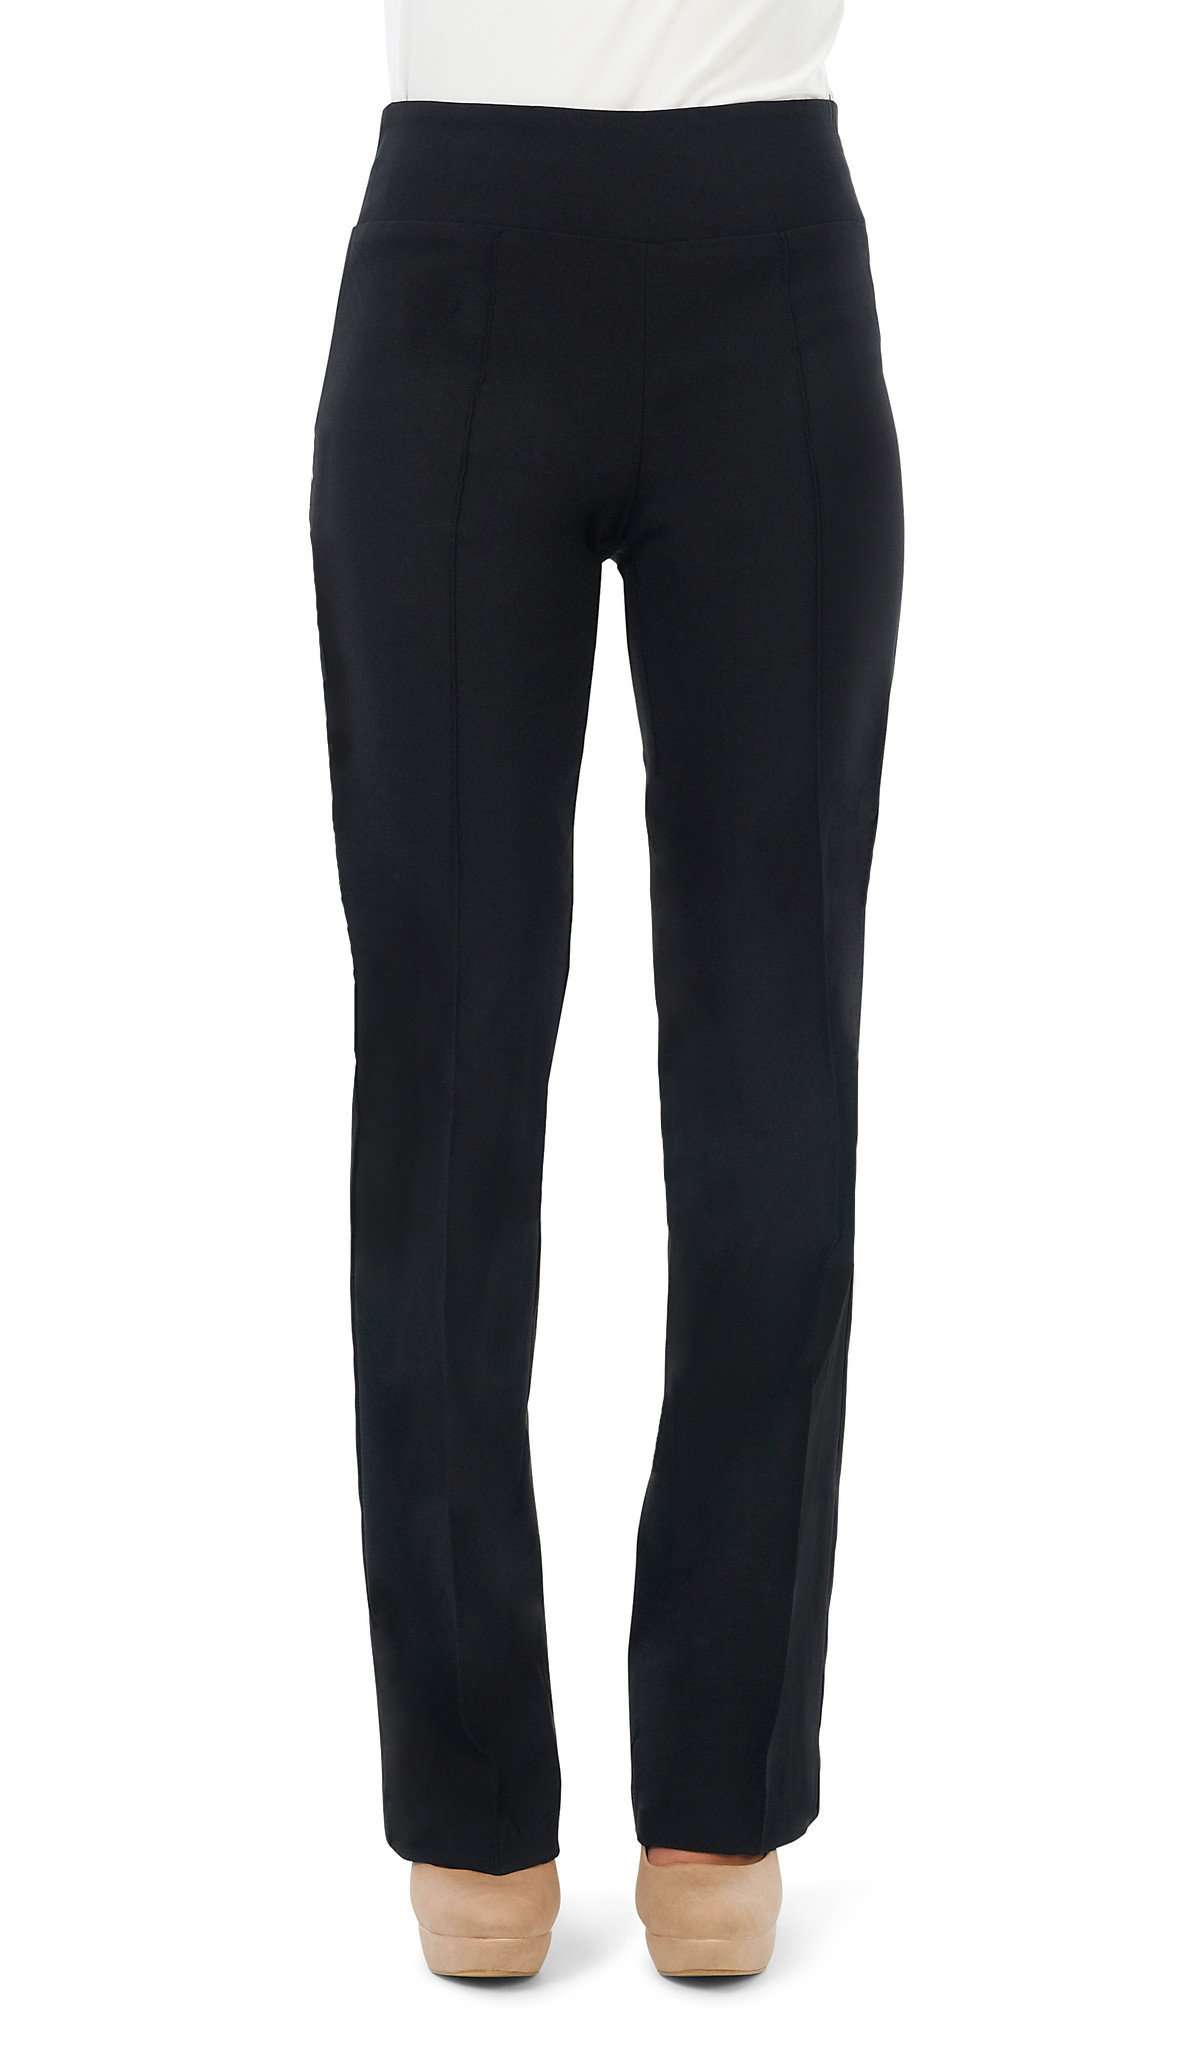 Black Miracle Pant-Quality and Comfort-Slimming Effect-Made in Canada - Yvonne Marie